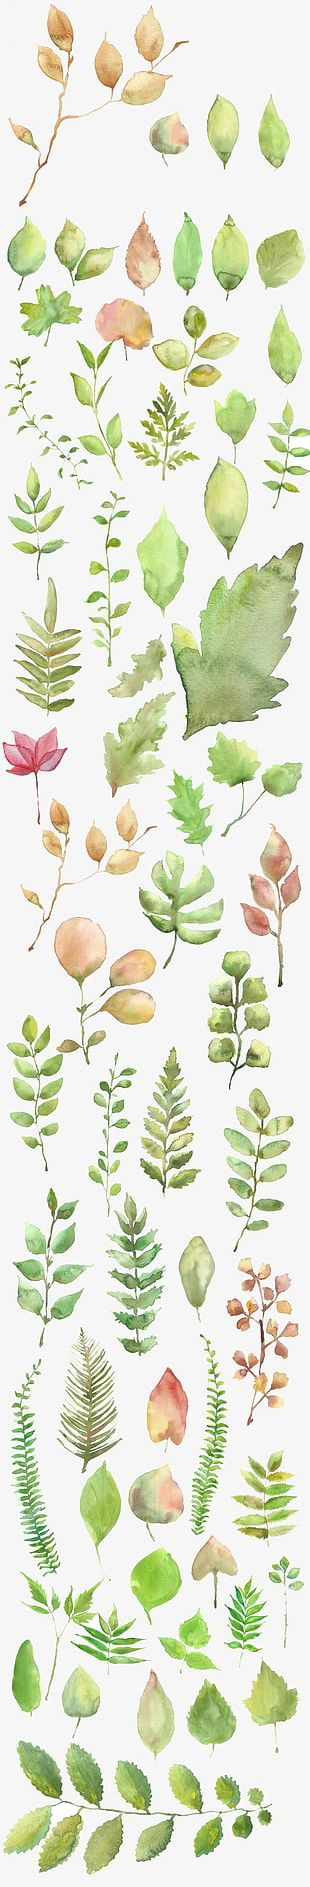 Watercolor Leaves Shading Material PNG